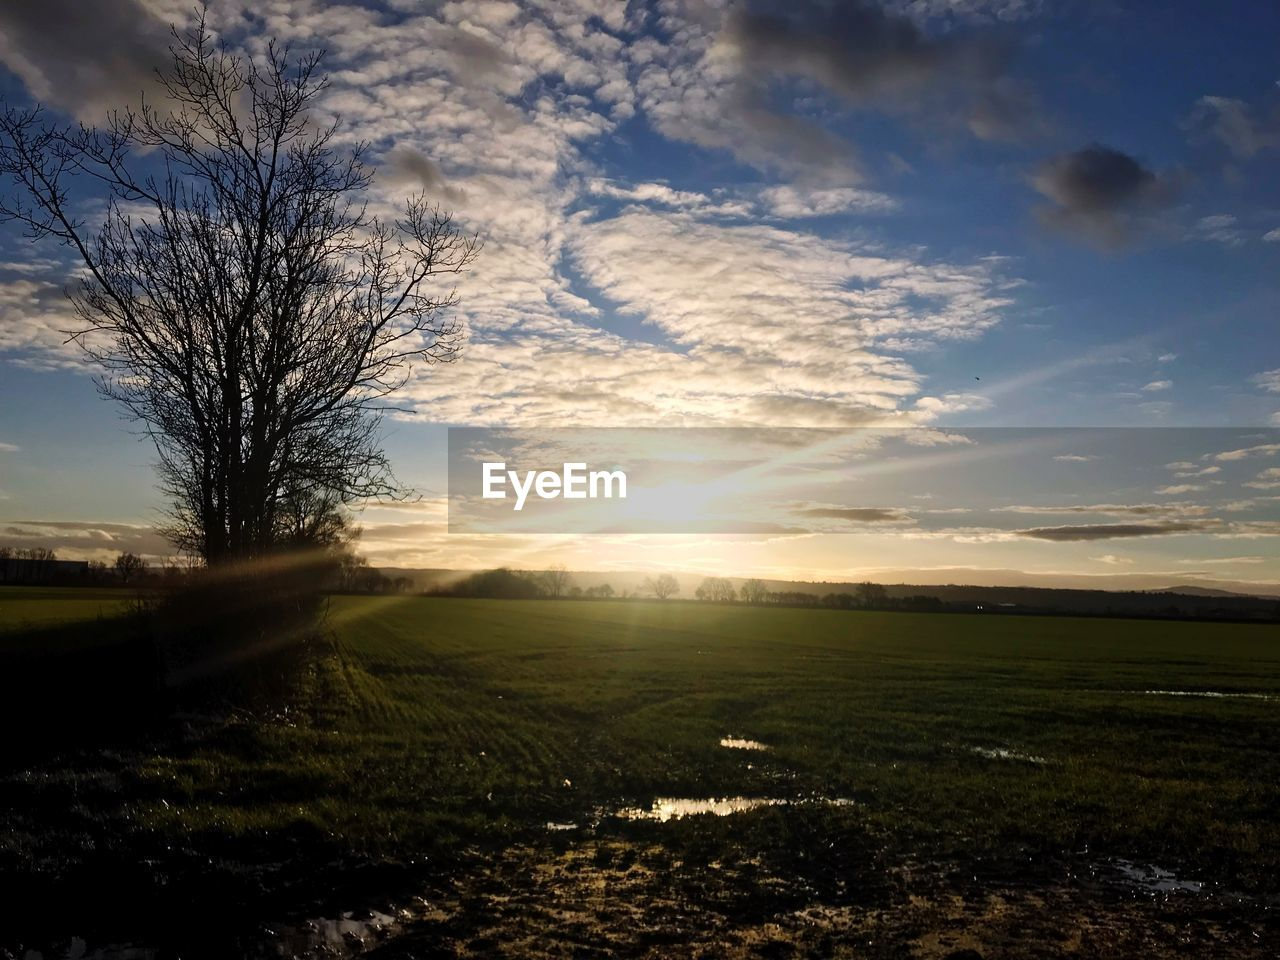 sky, scenics - nature, cloud - sky, tranquility, tranquil scene, beauty in nature, environment, landscape, field, sunset, land, sunlight, plant, sun, nature, tree, no people, rural scene, non-urban scene, grass, outdoors, lens flare